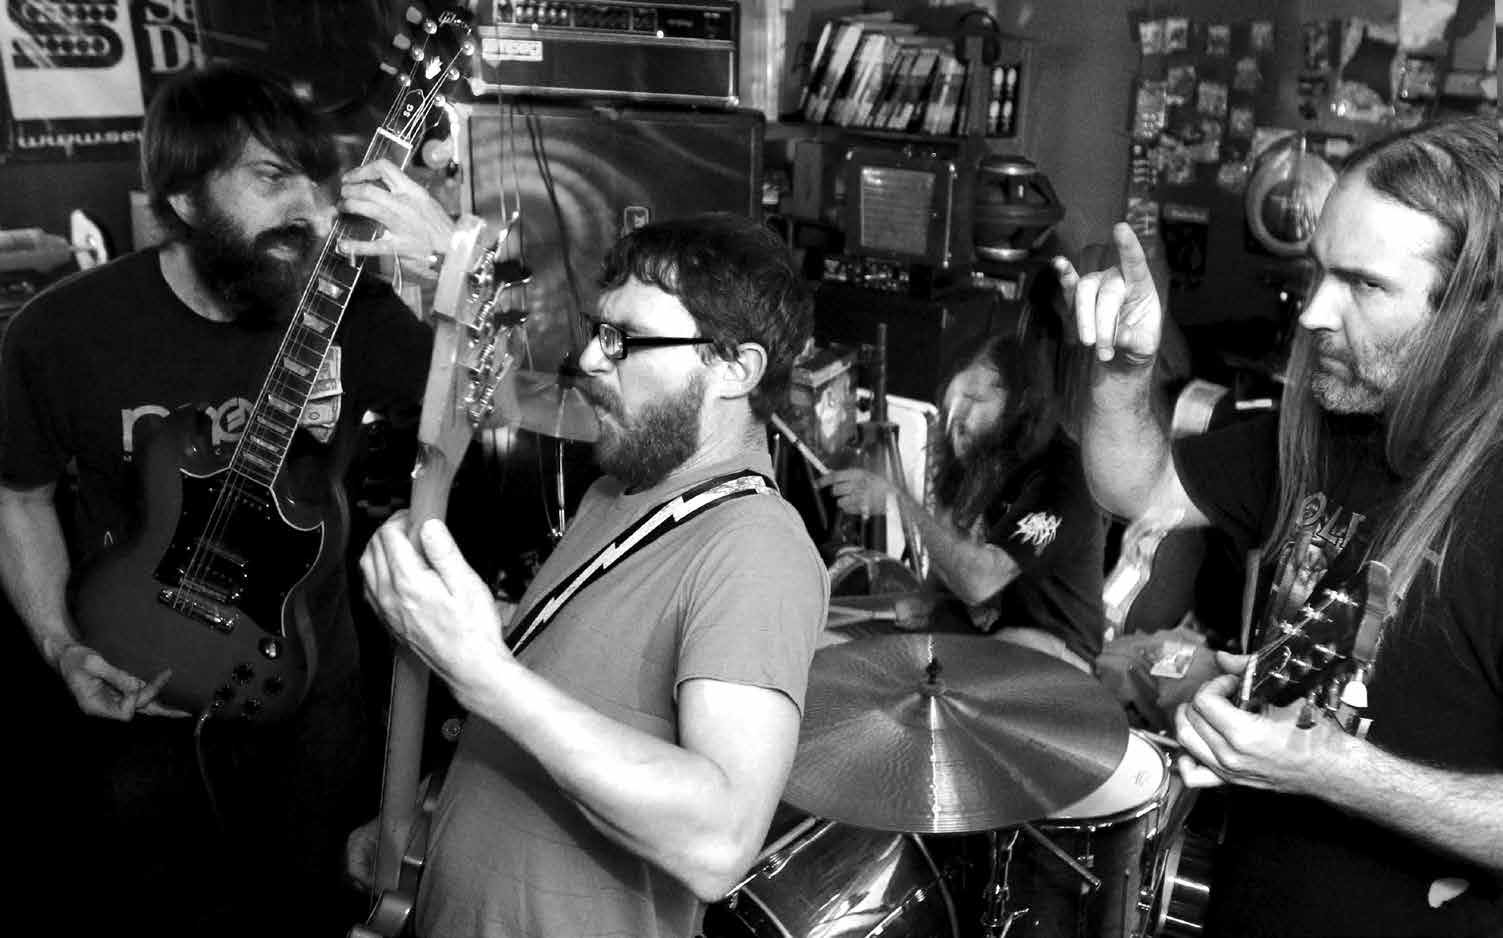 Mountain of Wizard at Webb's Bywater Music